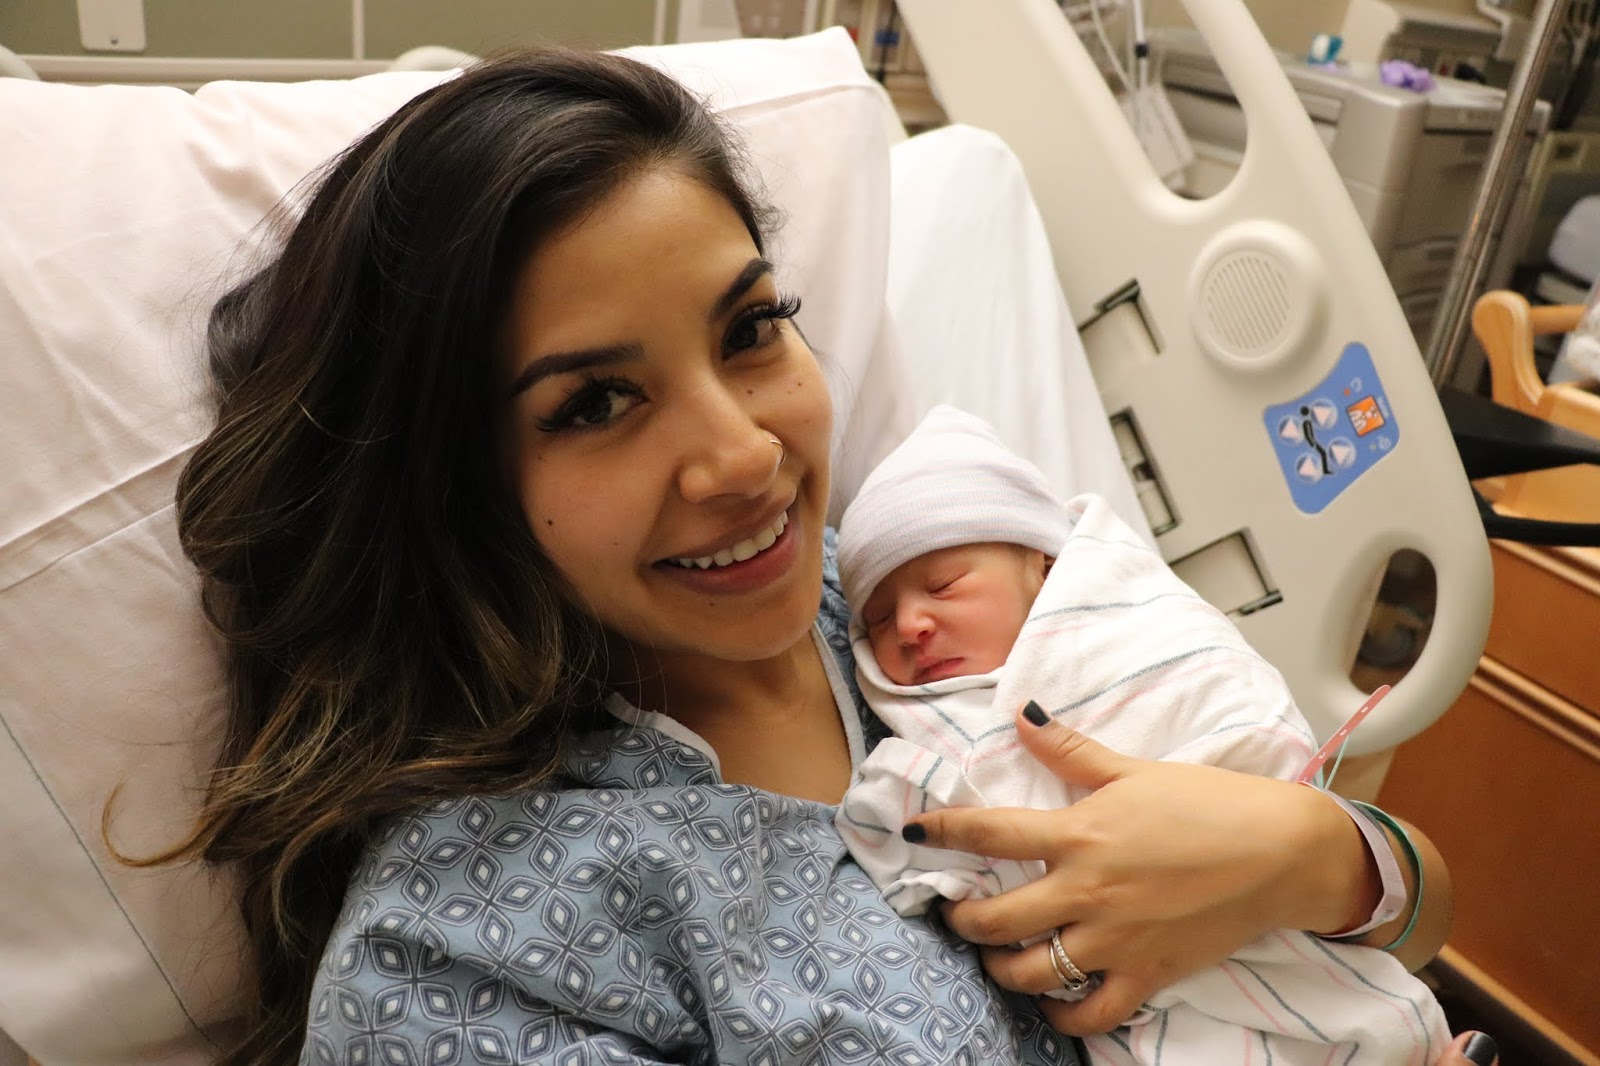 new_mom_with_newborn_baby_after_giving_birth